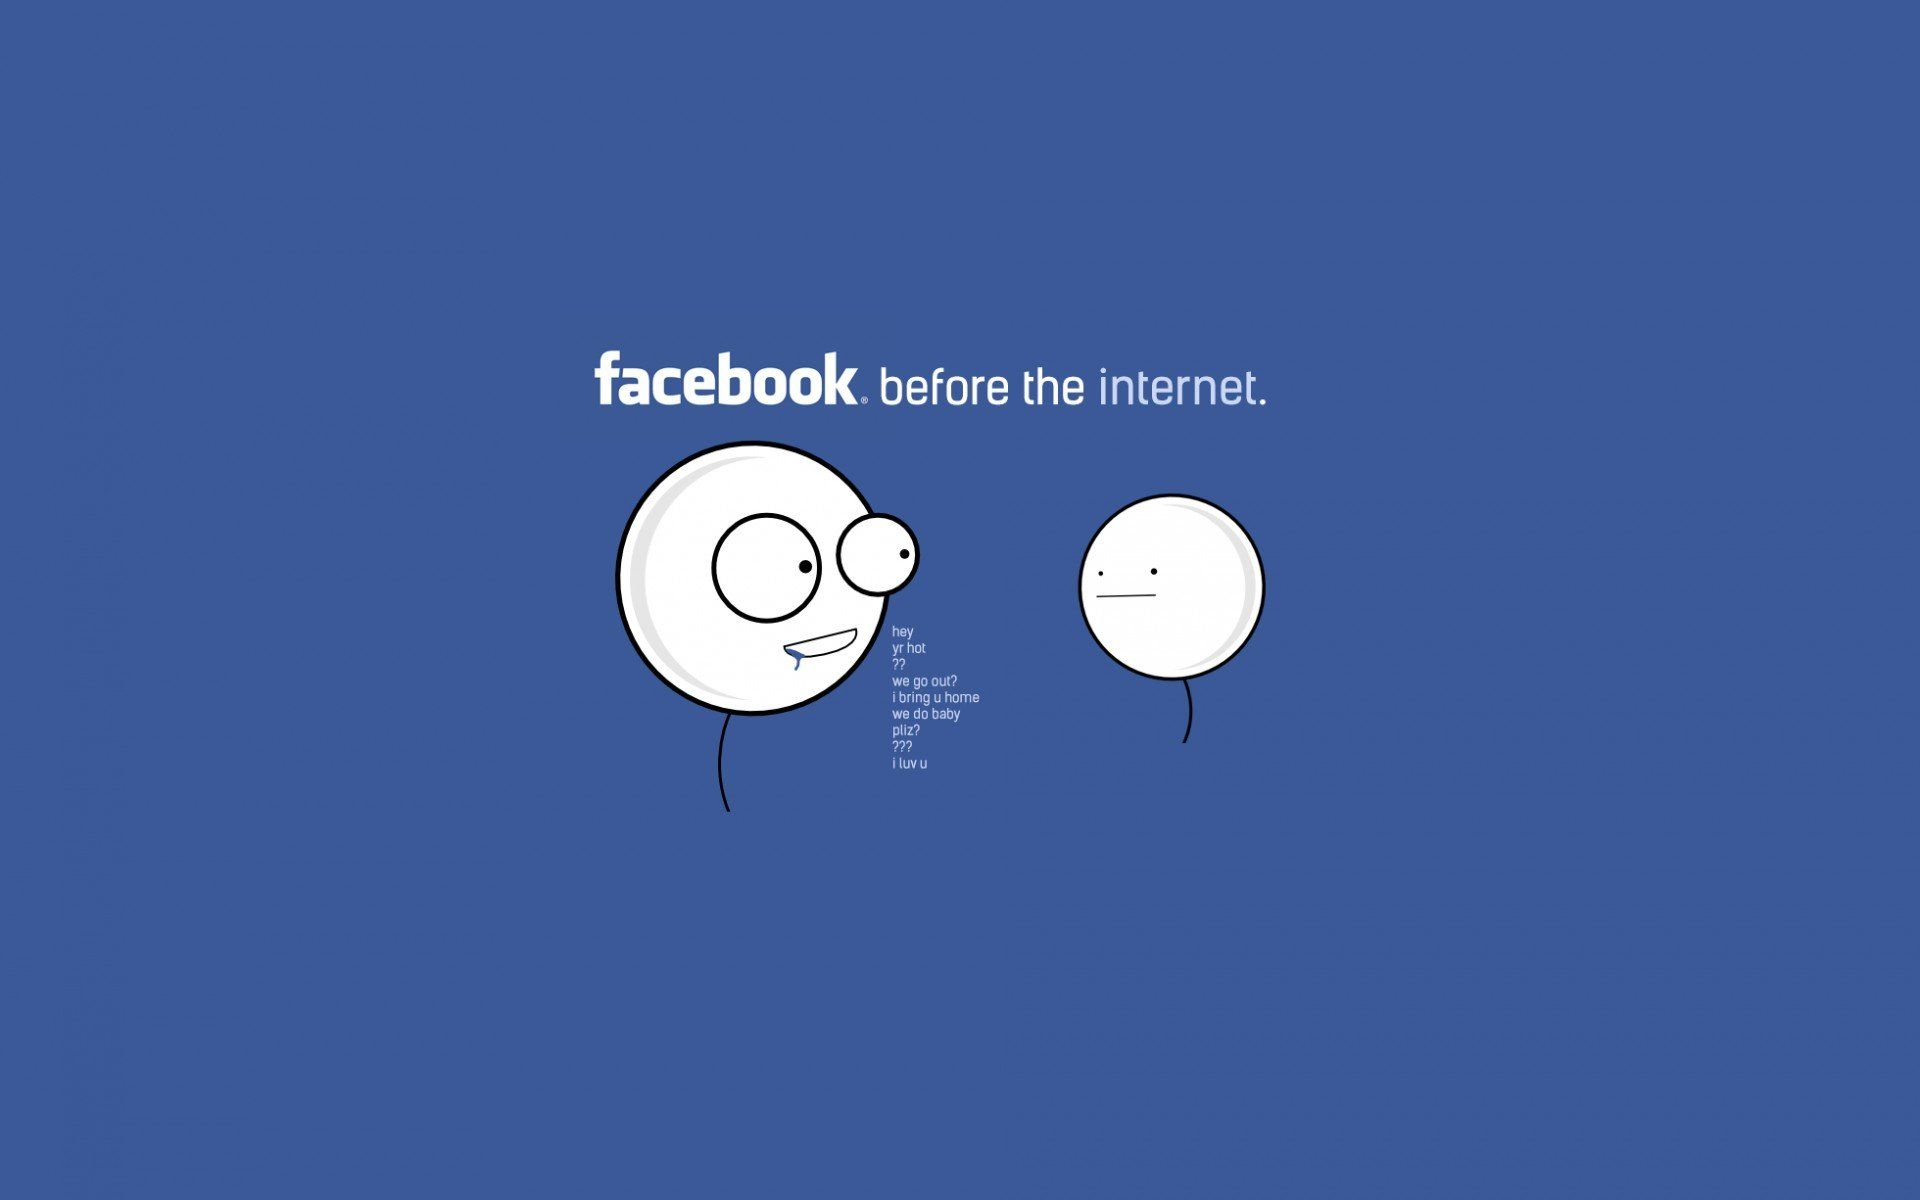 Funny Quotes About Facebook Wallpaper